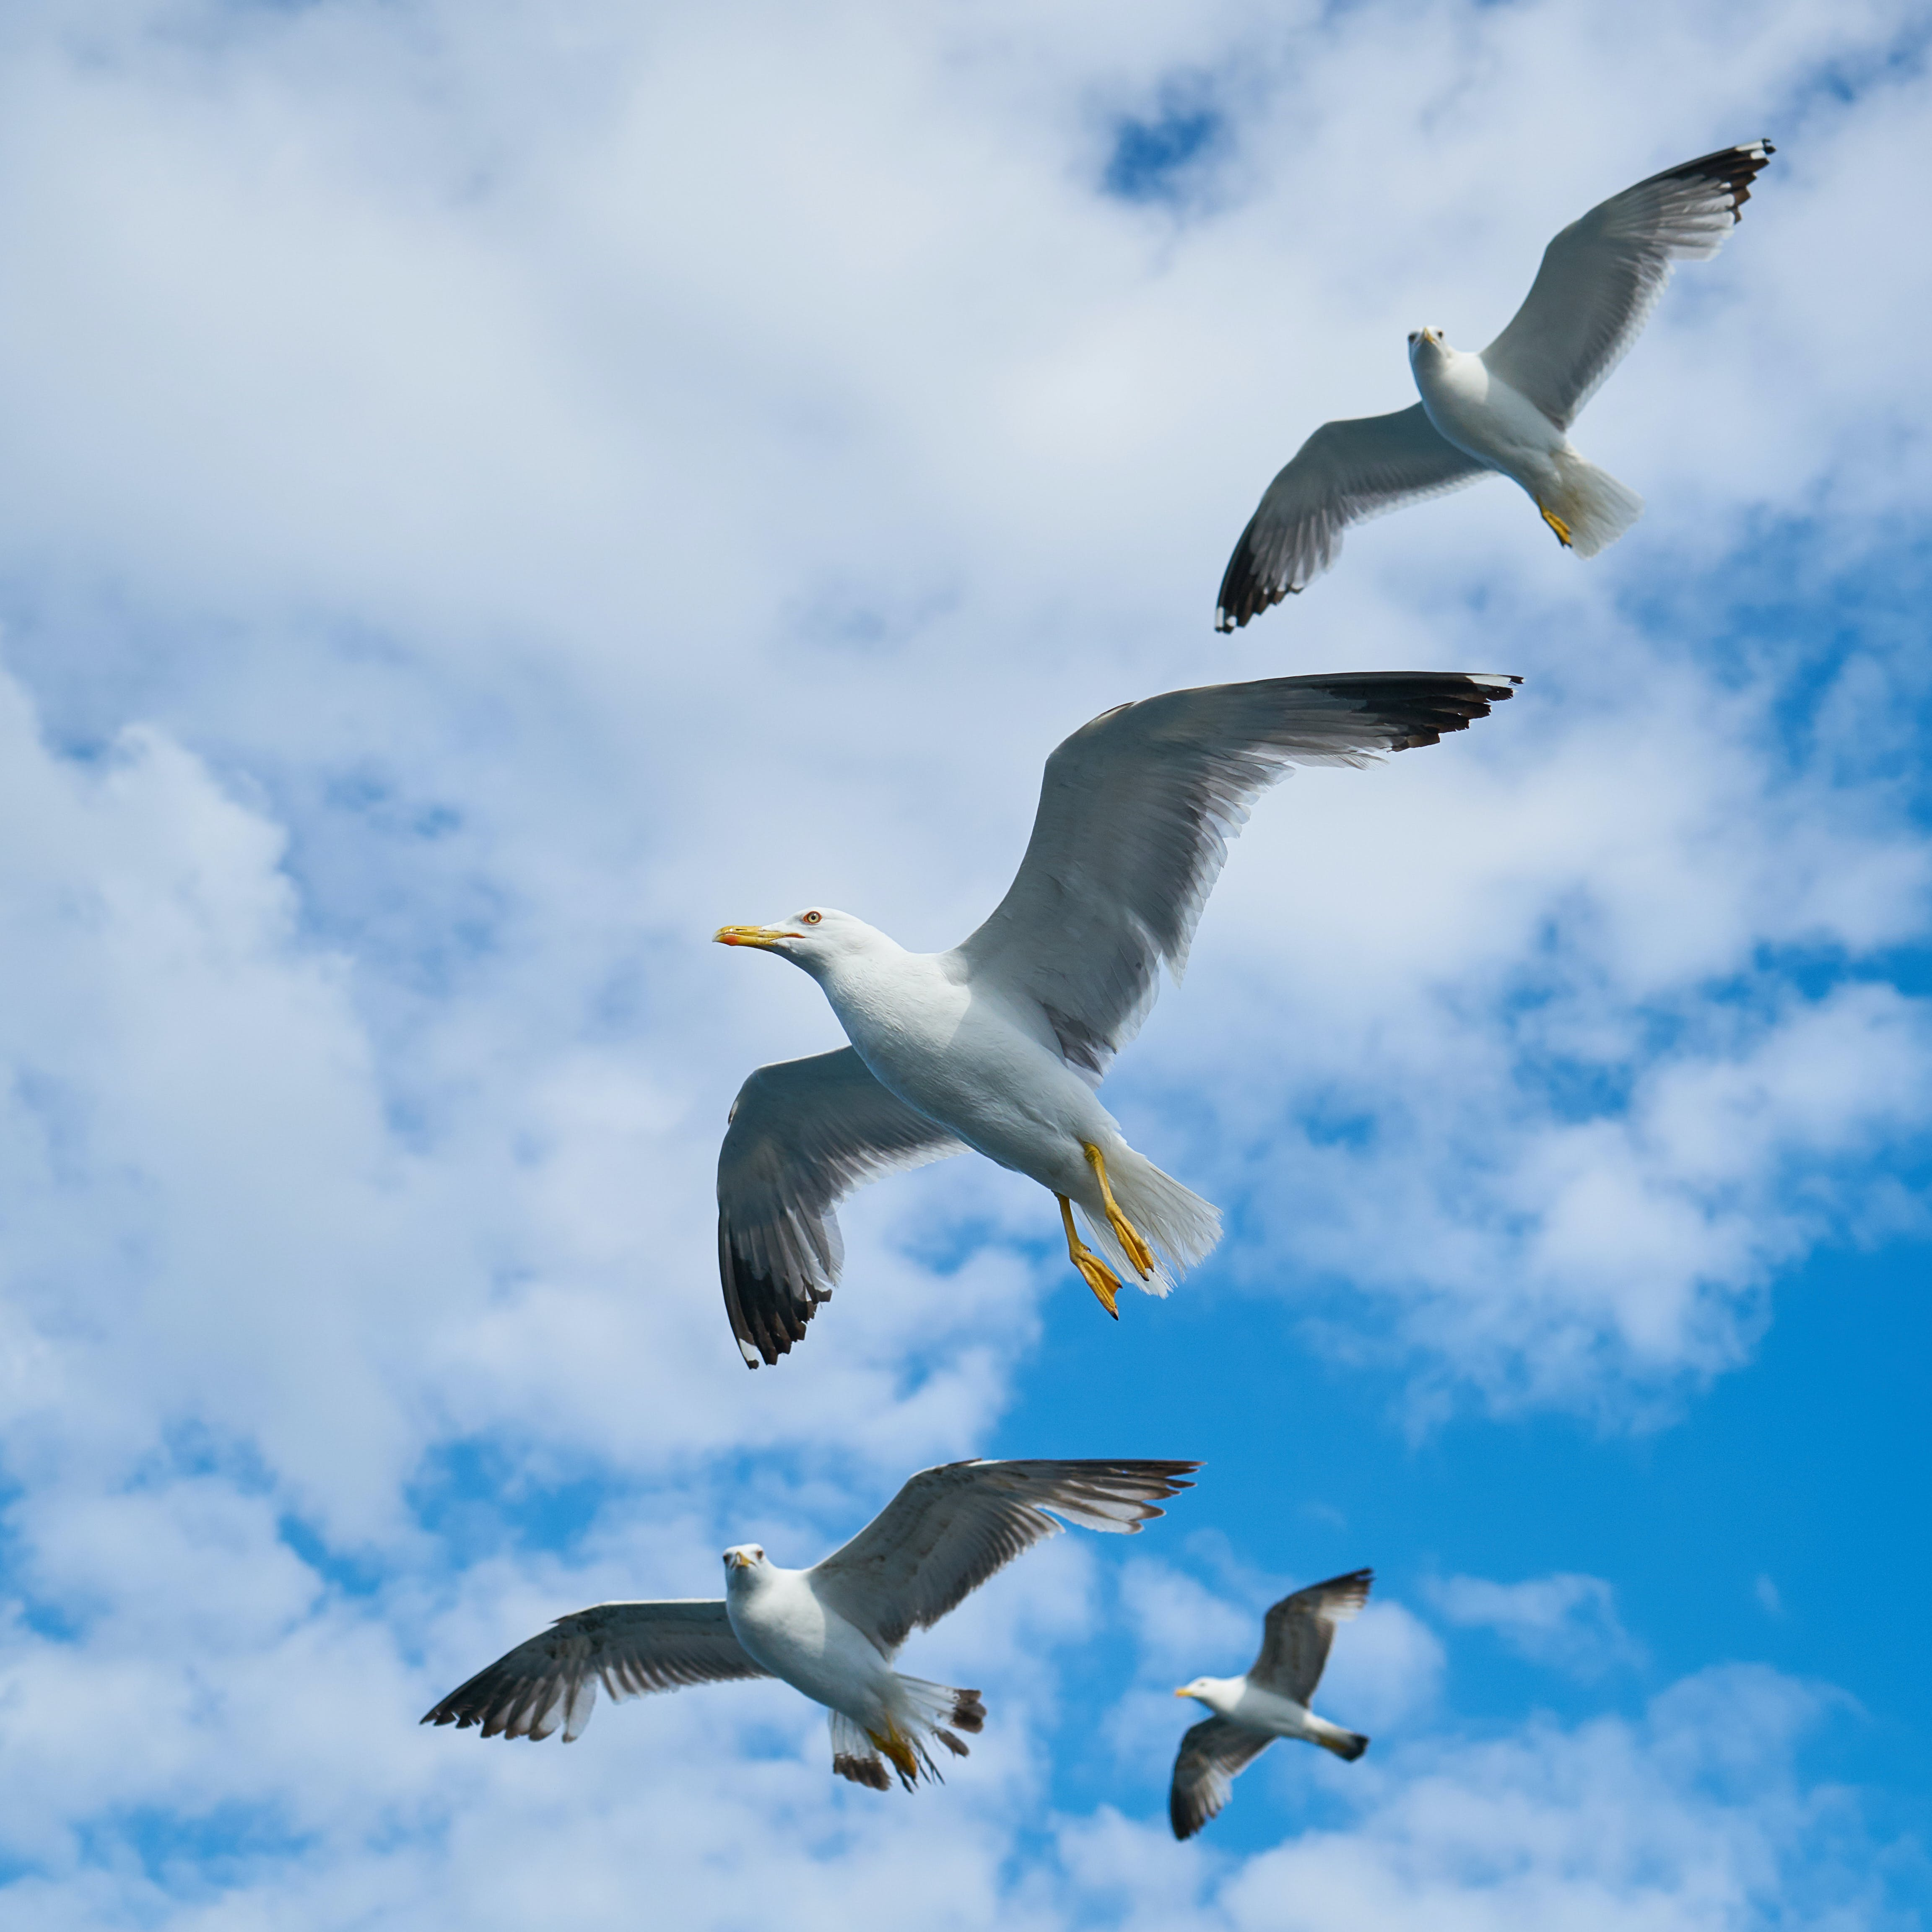 Four Flying Seagulls